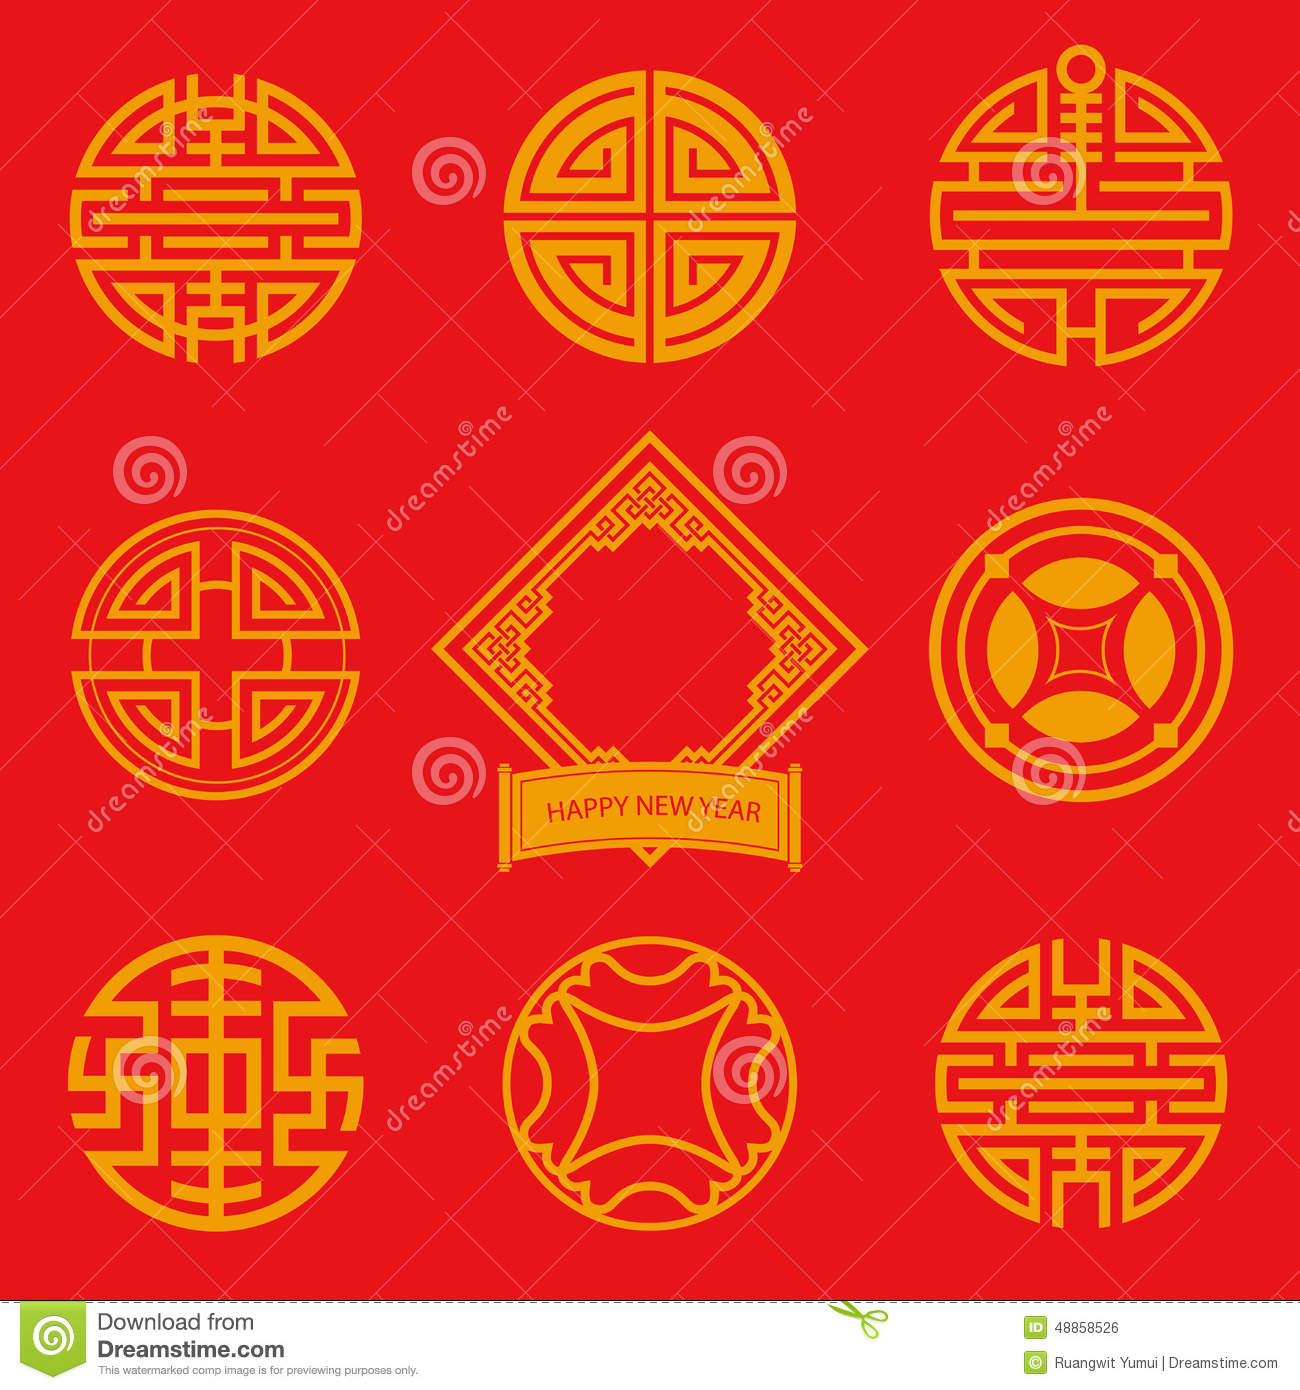 Chinese Calendar Illustration : Flat design icon of chinese art for new year stock